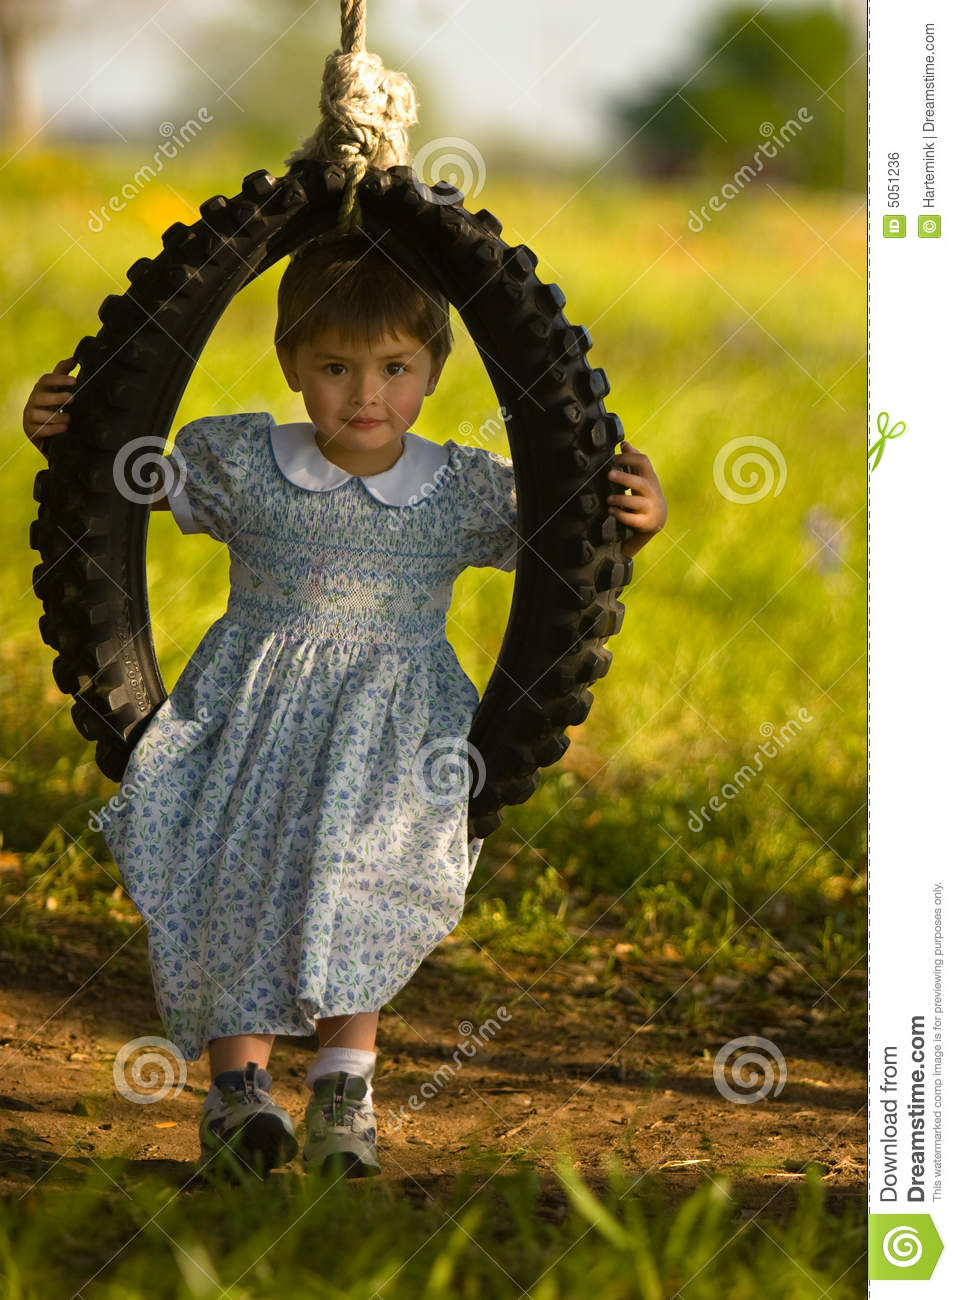 Girl In Dress And Old Fashioned Swing Royalty Free Stock Image ...